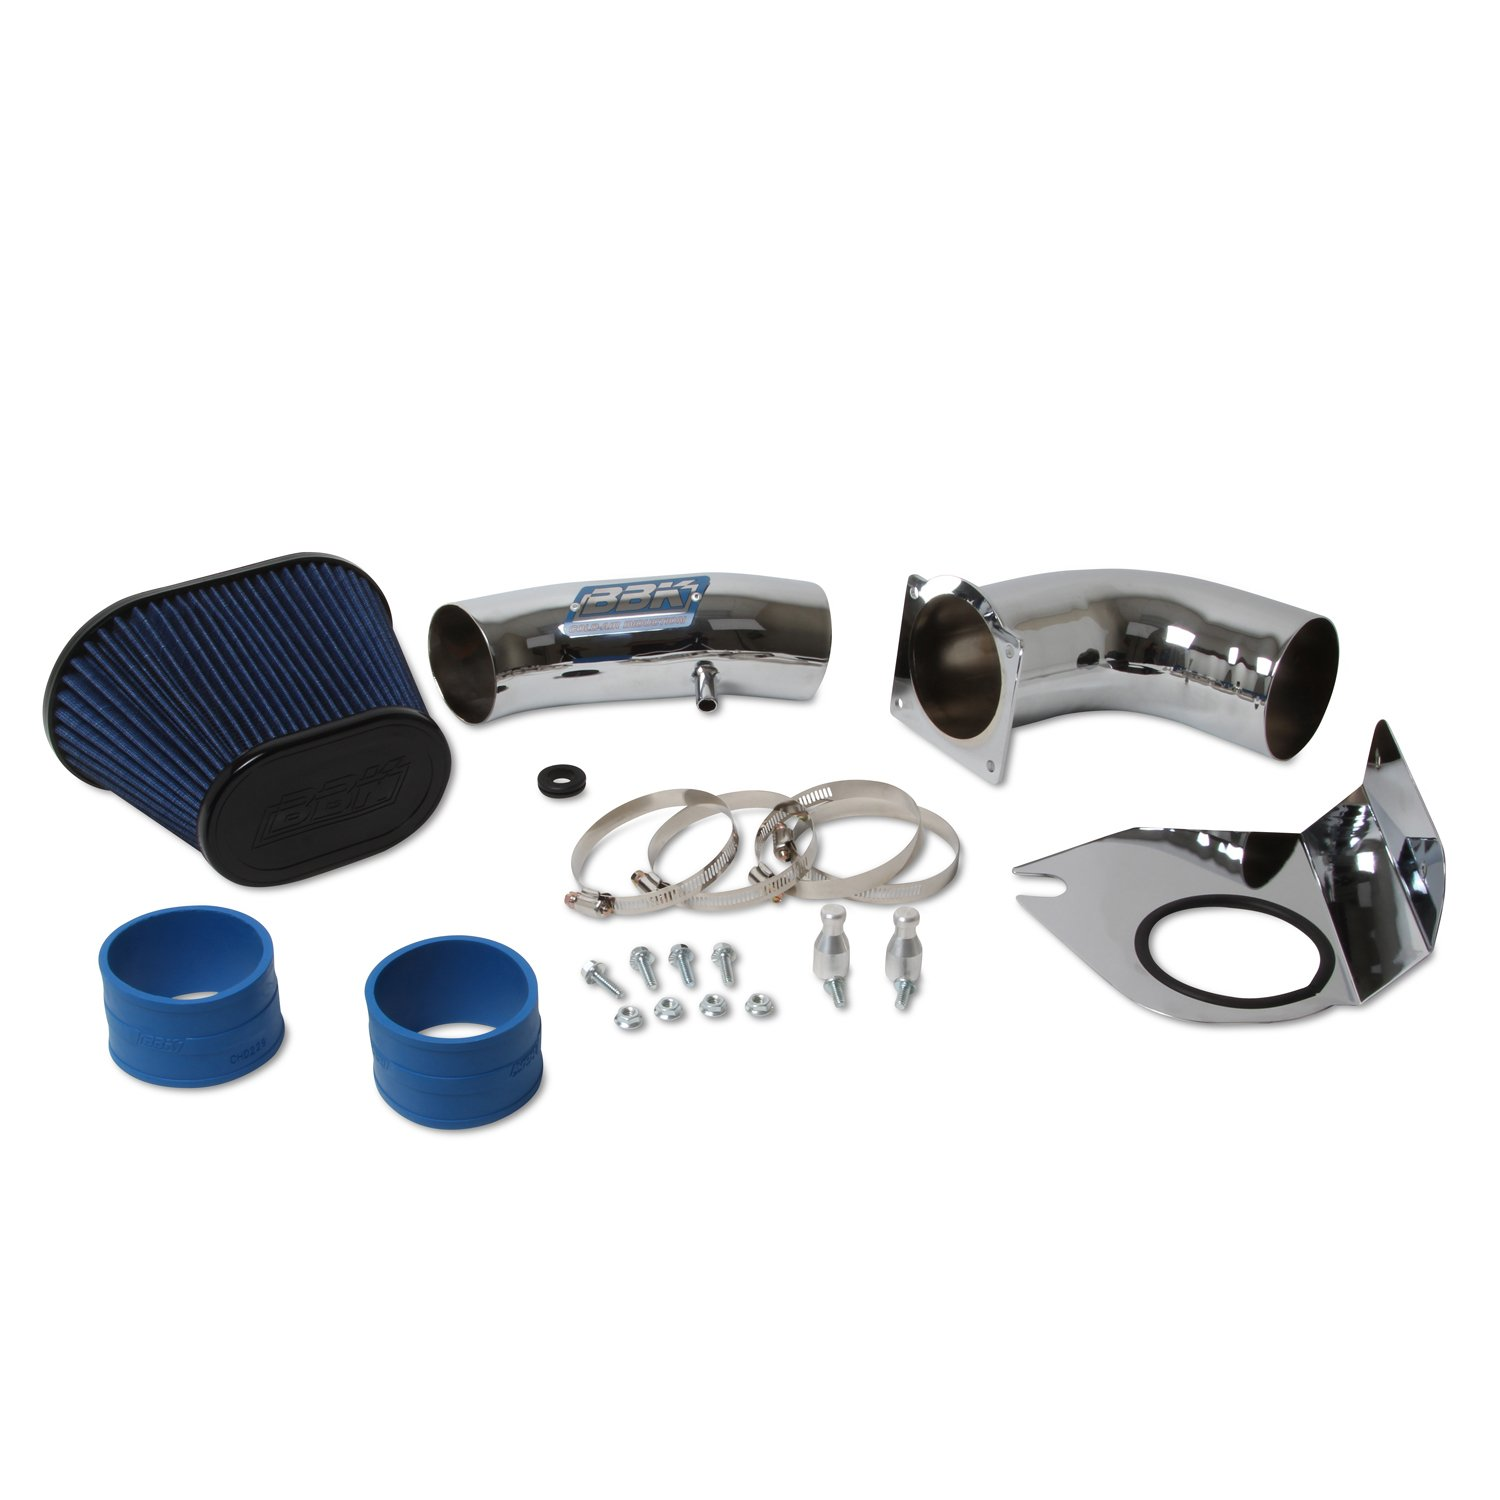 BBK 1712 Cold Air Intake System Power Plus Series Performance Kit For Ford Mustang 5.0L Fenderwell Style Chrome Finish